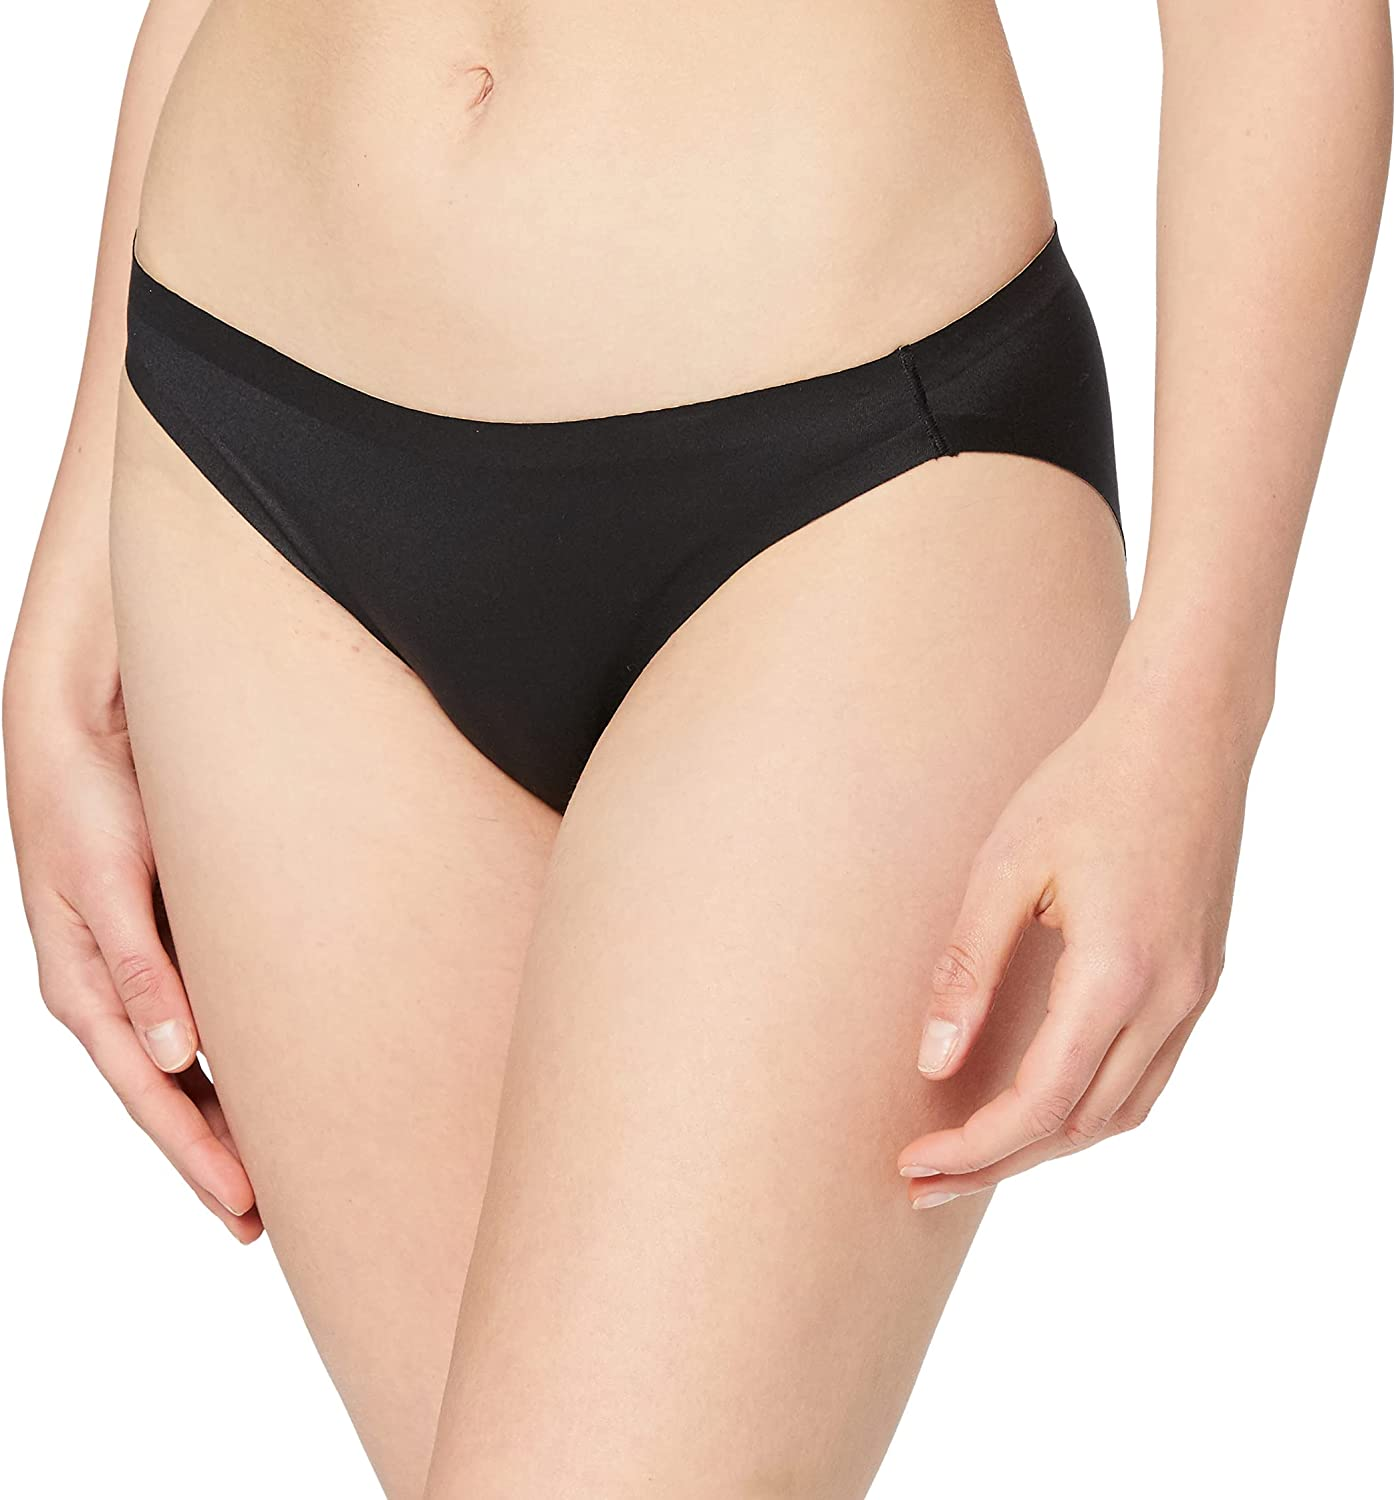 Maidenform Women's Comfort Devotion No Pinch Panties, Hipster, Bikini, and Thong Available: Clothing